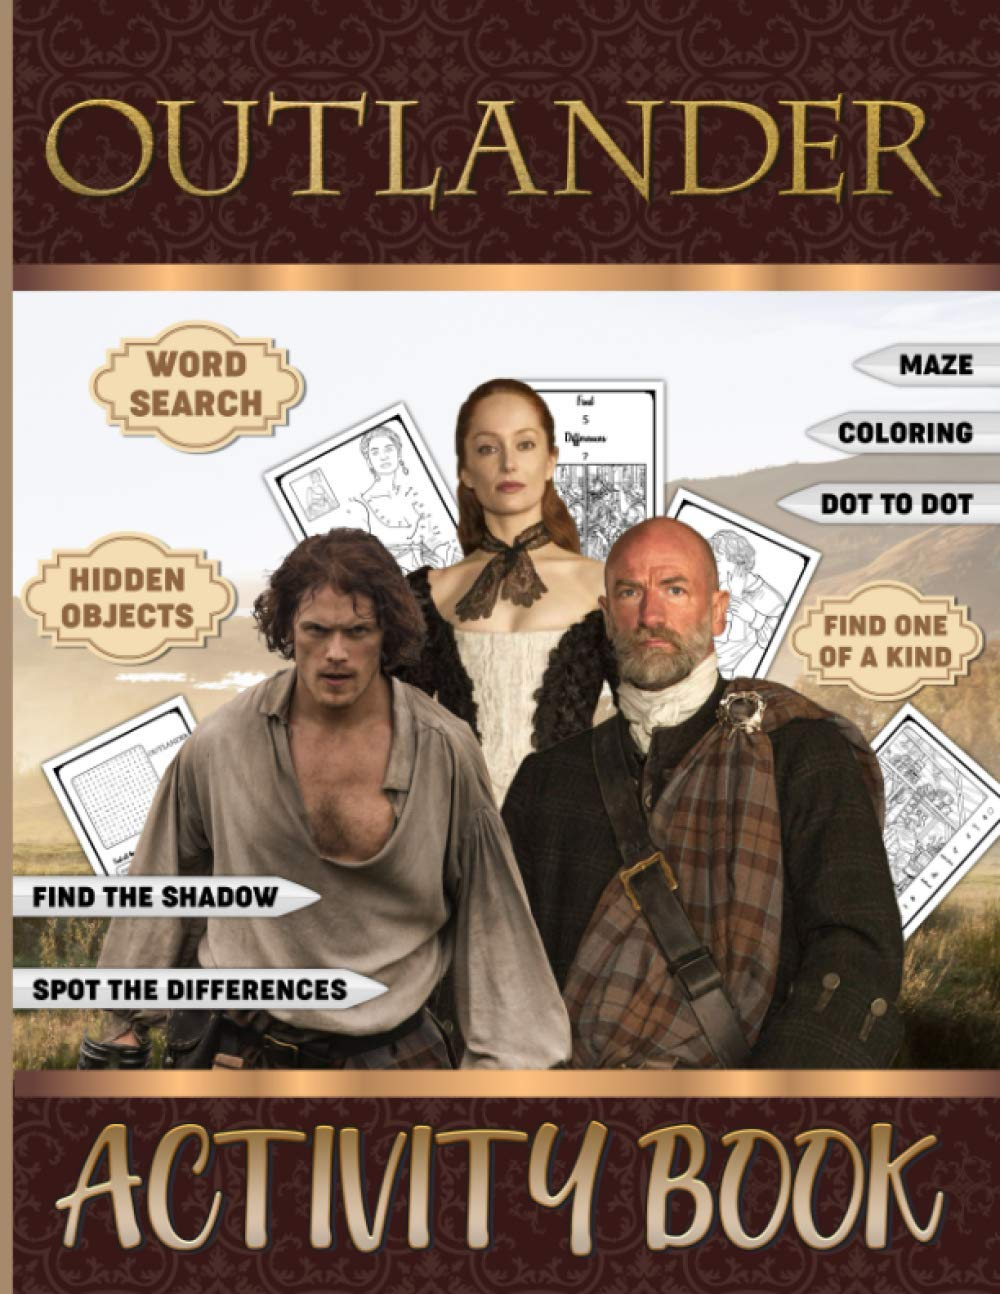 Outlander Activity Book: Beautiful Simple Designs Adult, Kid Coloring, Find Shadow, Dot To Dot, Word Search, Maze, Hidden Objects, One Of A Kind, Spot Differences Activities Books For Men And Women